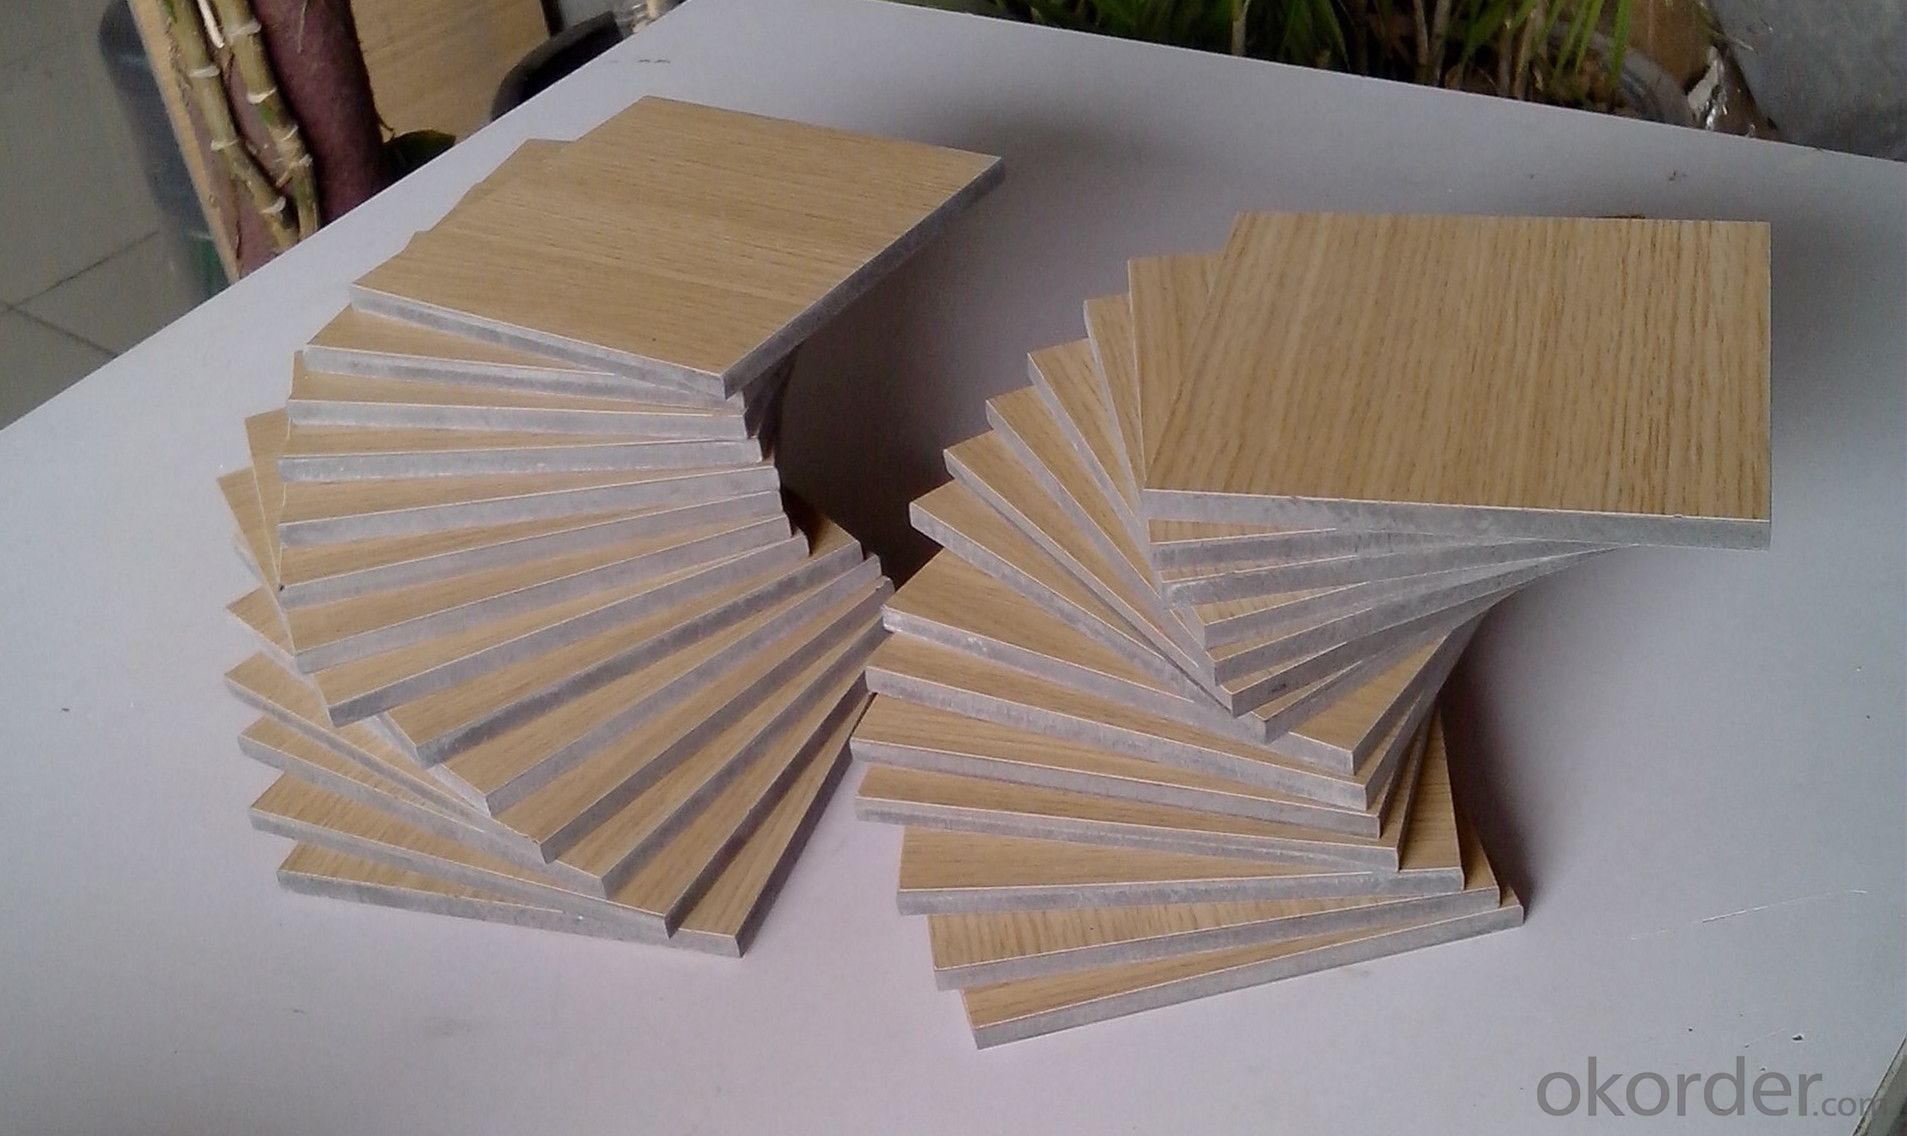 Compact High Pressure Laminate Wood Grain Surface